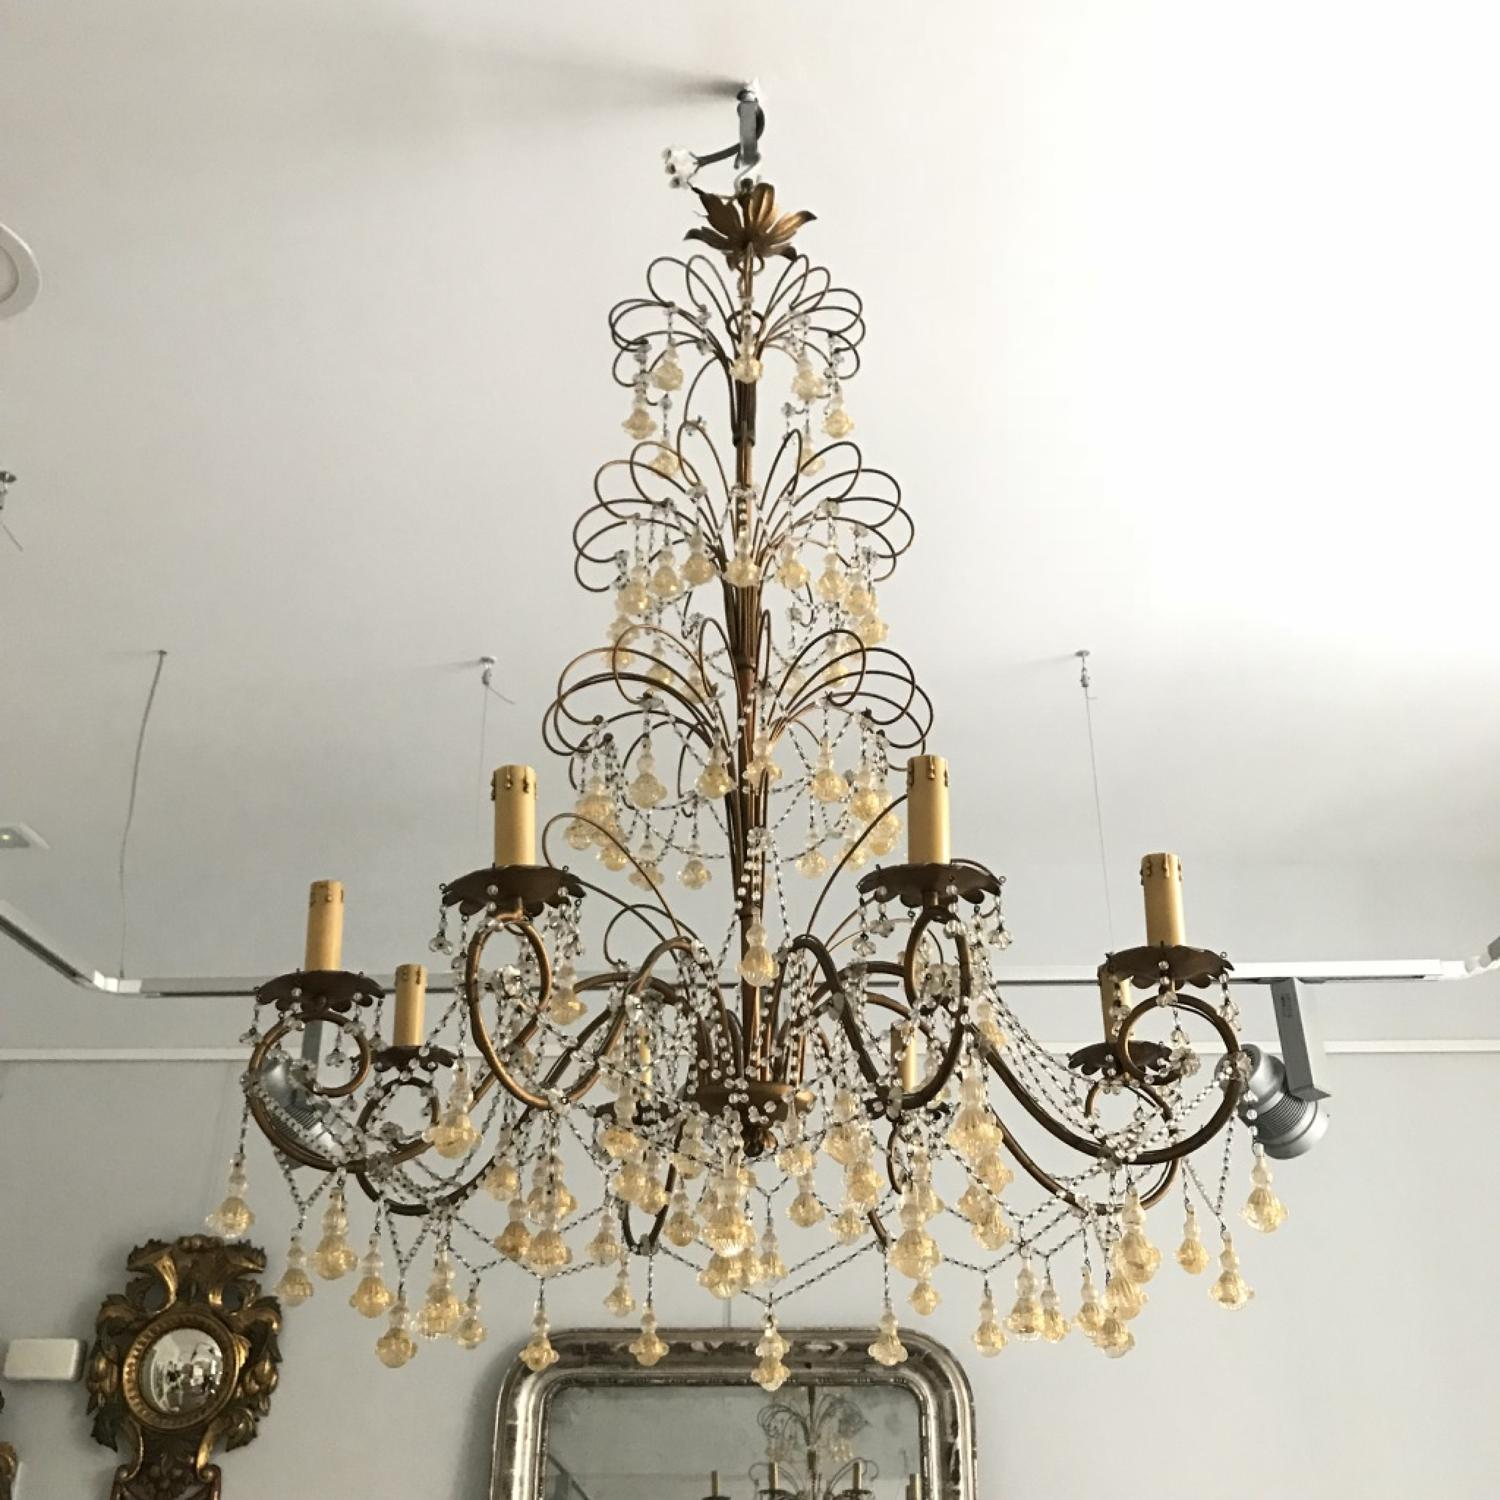 Murano Chandelier with Pendants, Circa 1950